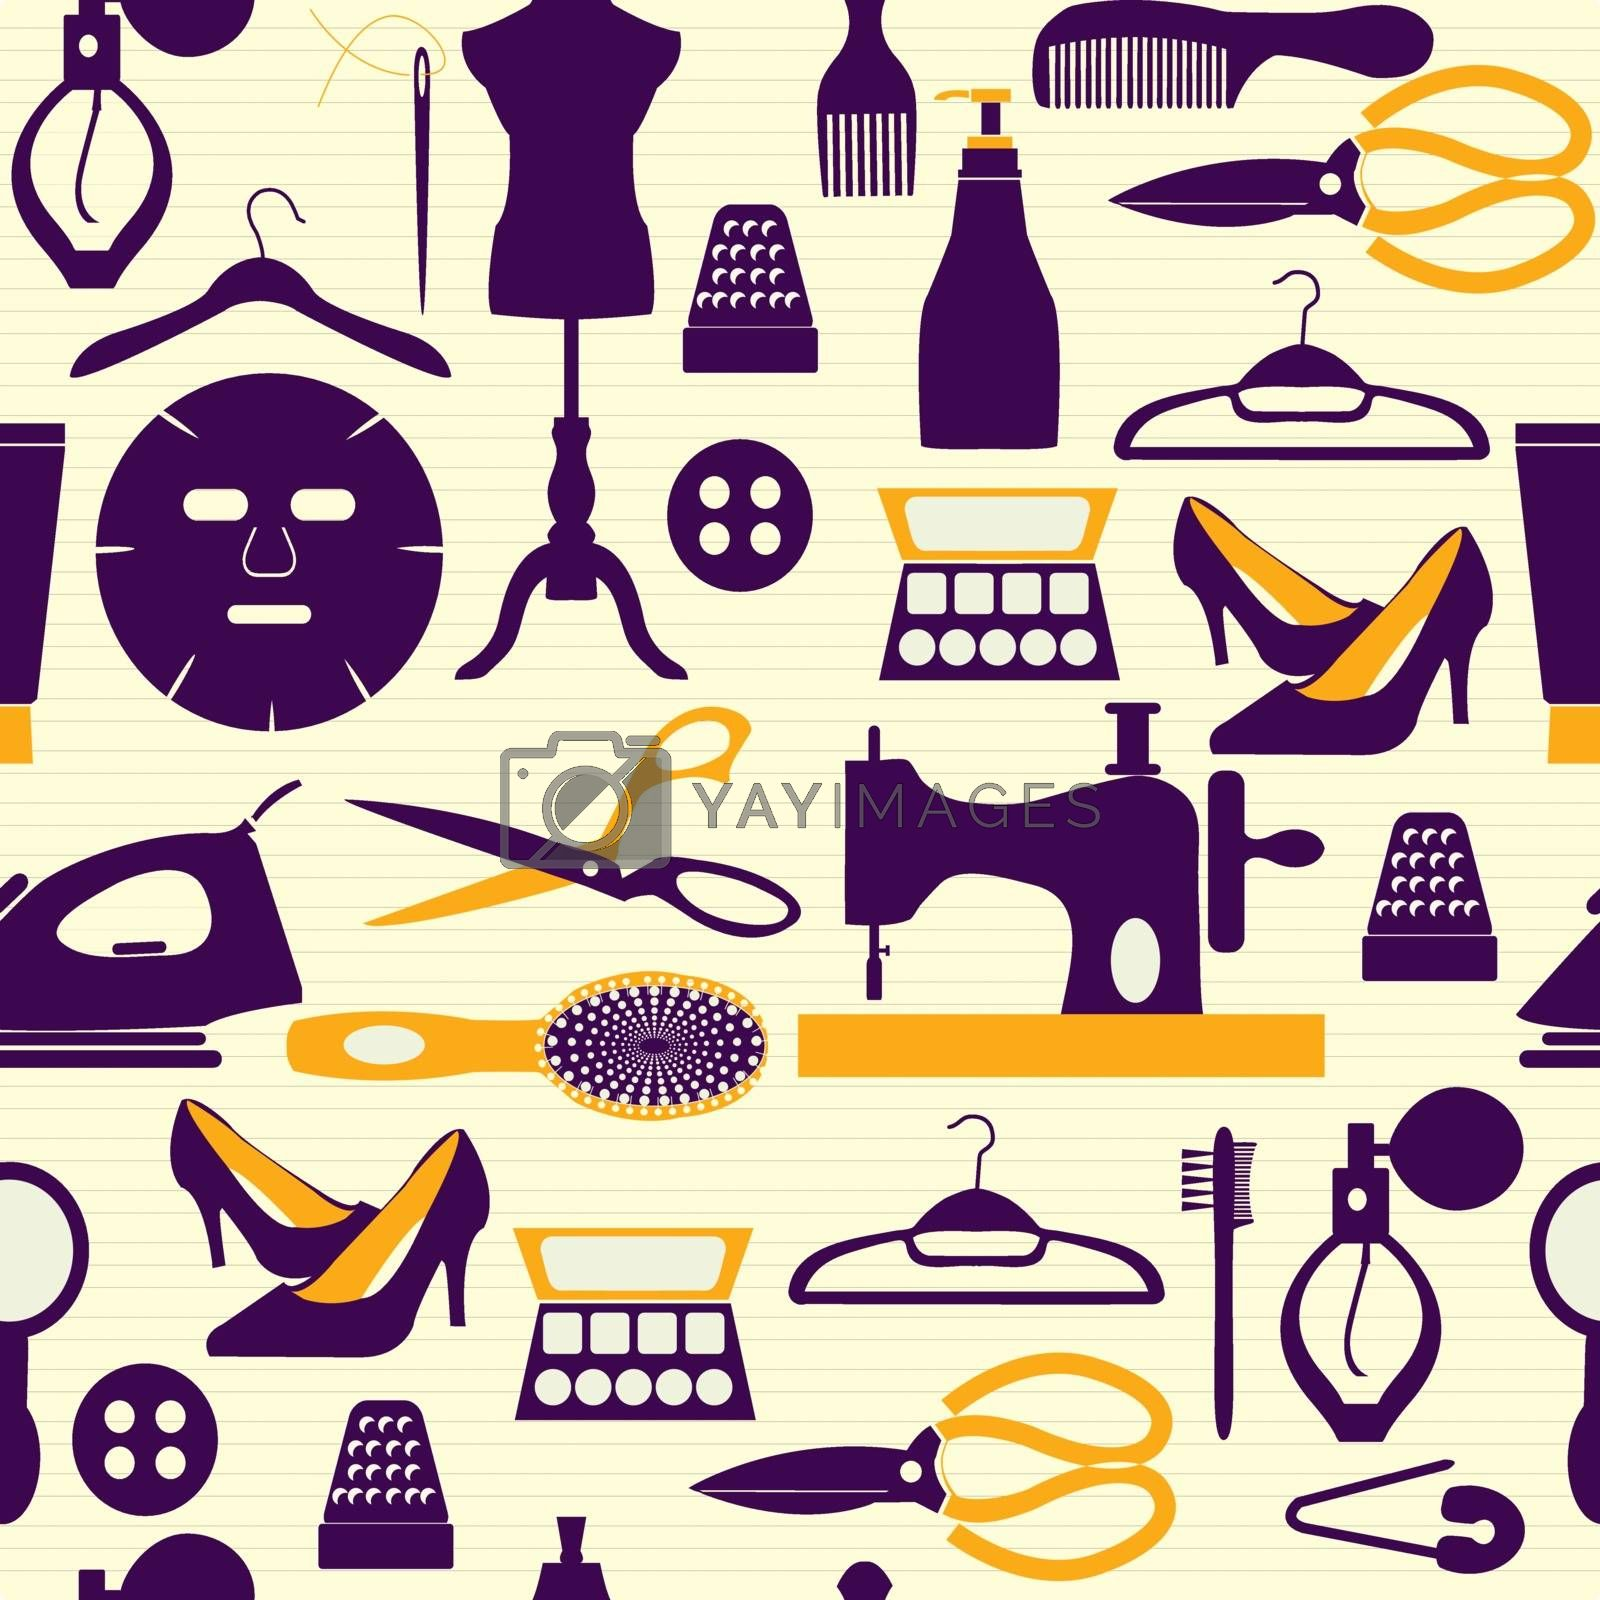 Vector Seamless pattern Fashion and beauty themed background. Fashion and sewing items icon set  - Illustration